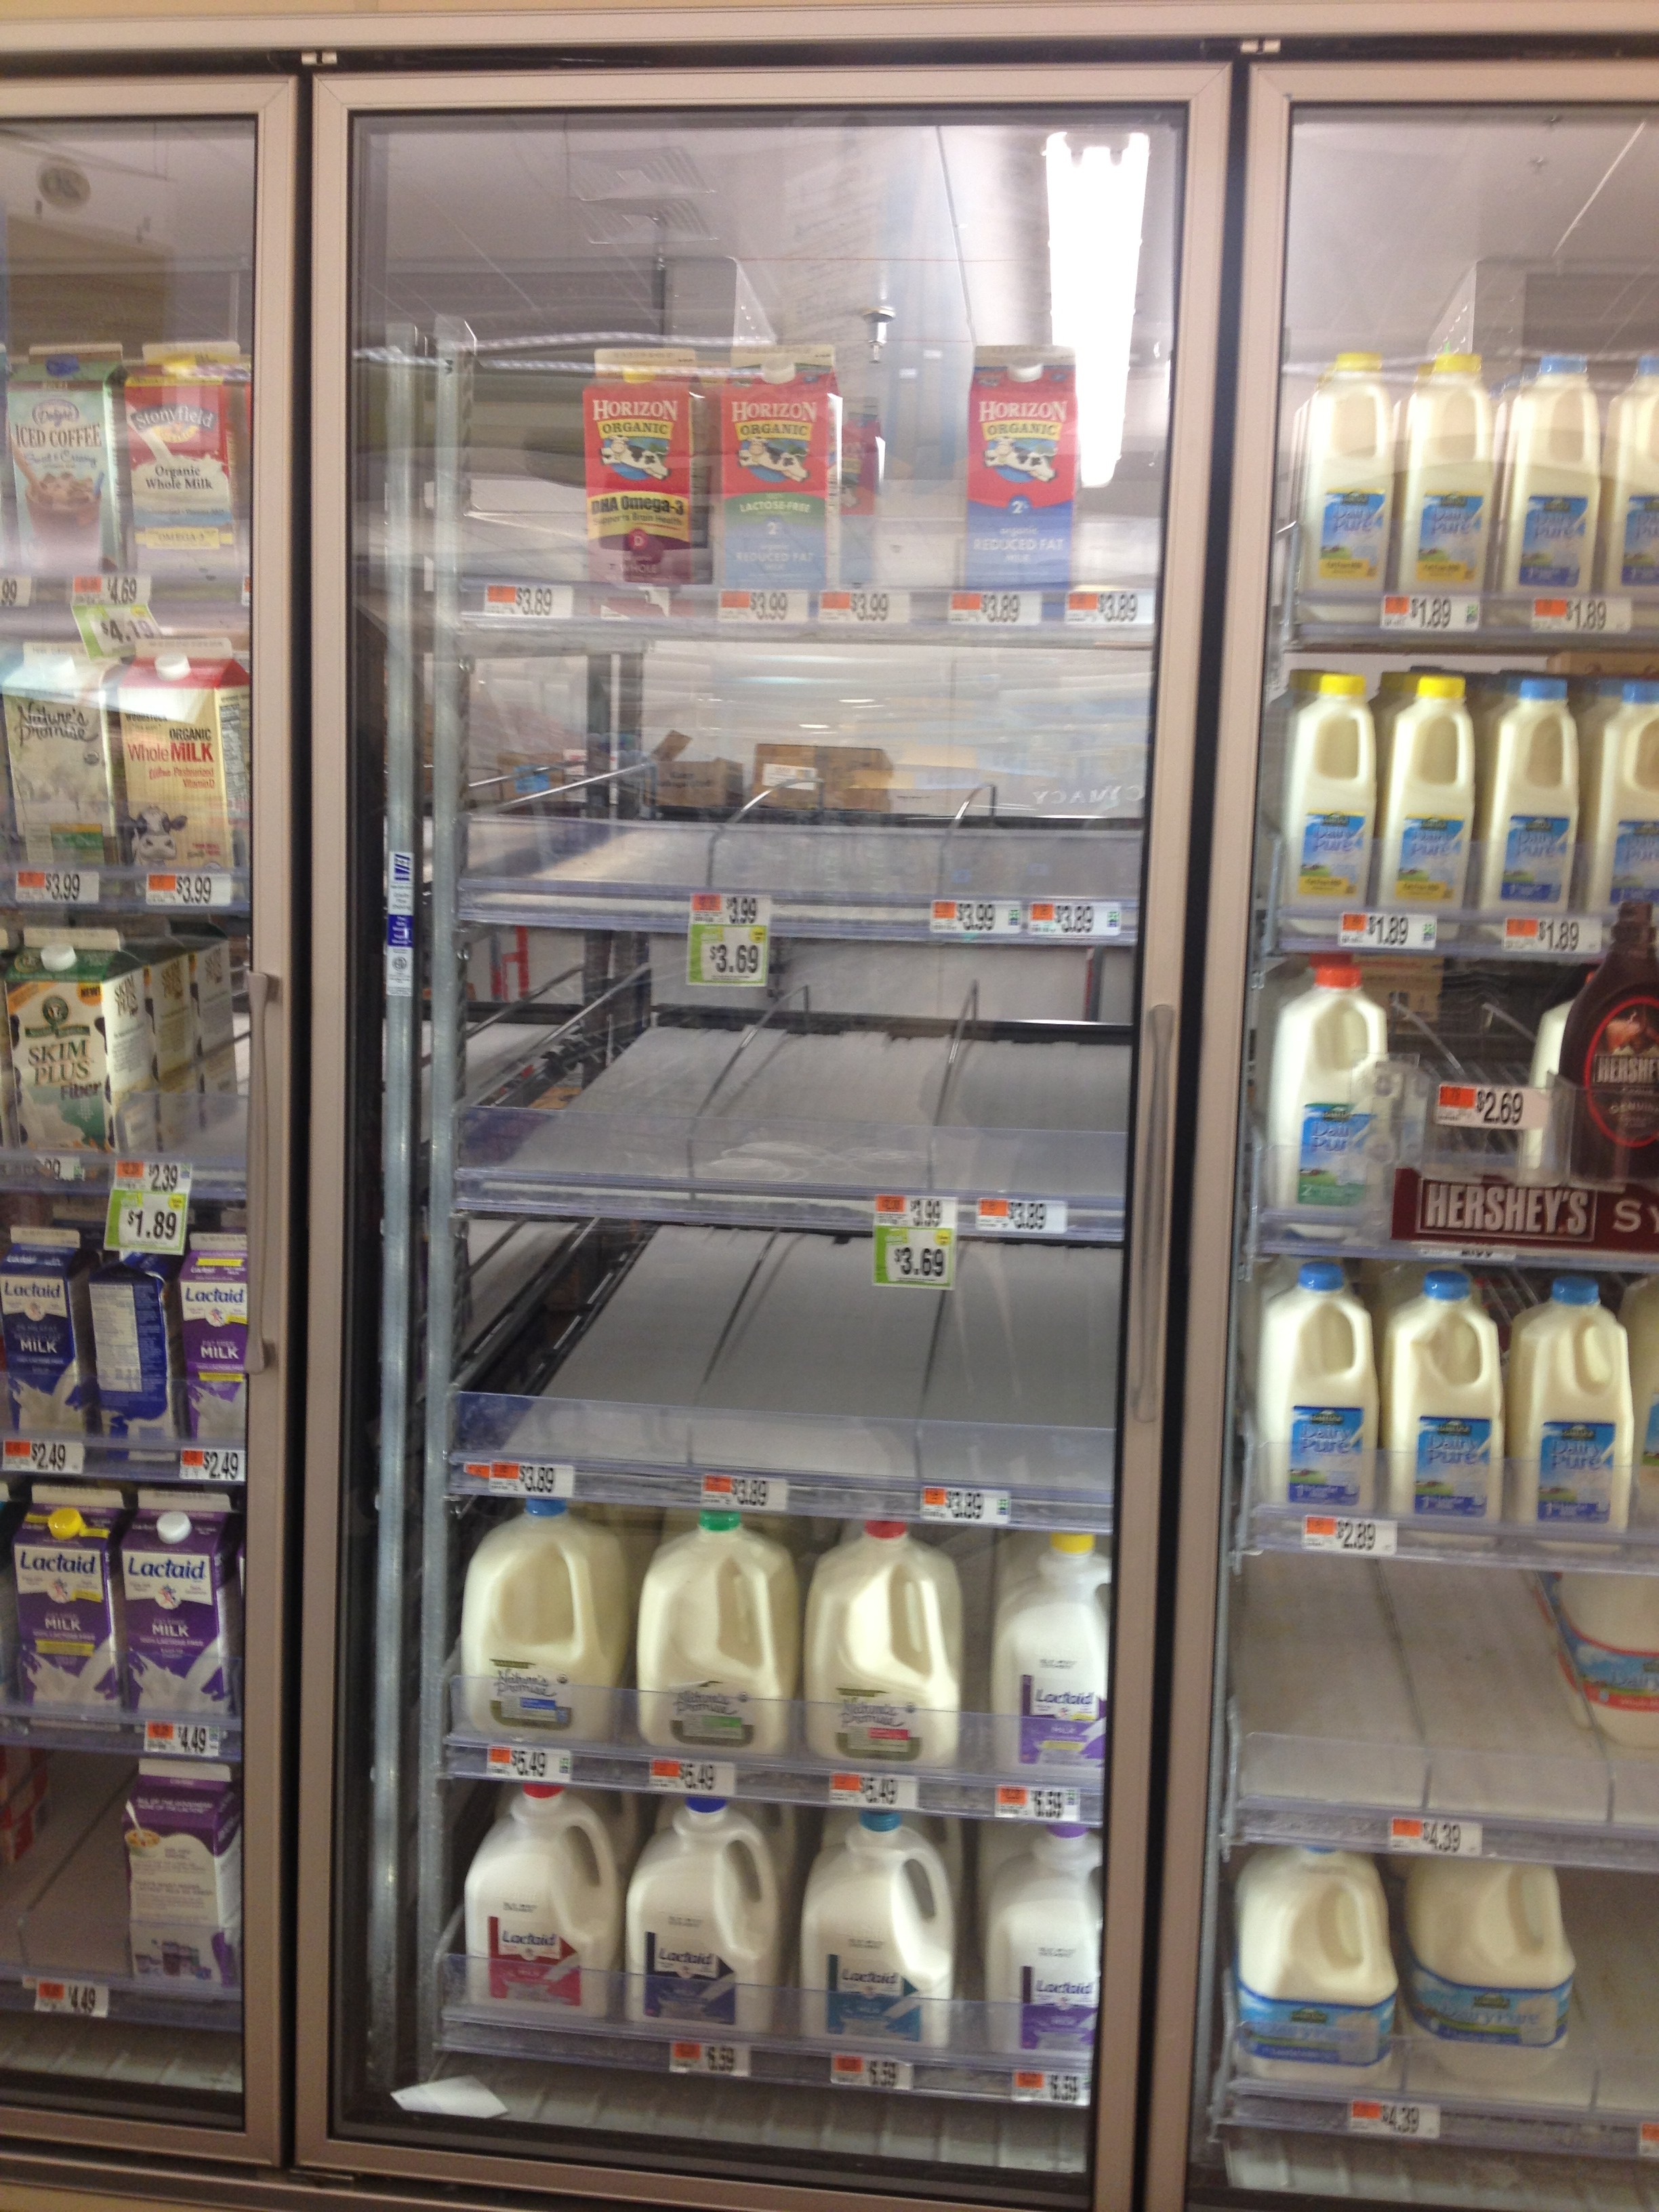 Milk was in high demand in preparation for Nemo. Photo by Chelsea Hirsch.